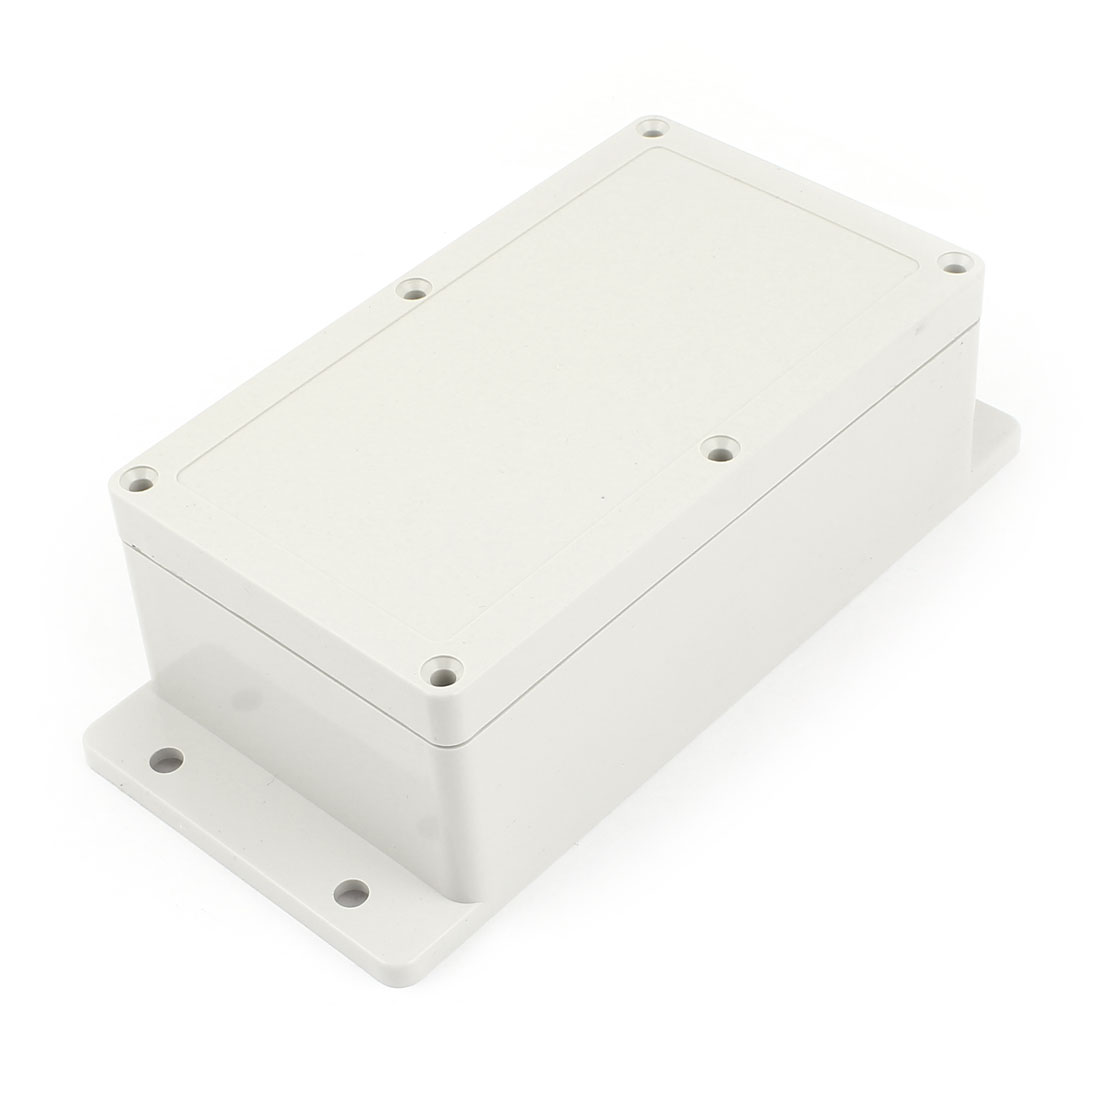 158mm x 90mm x 60mm Waterproof Plastic Sealed DIY Joint Electrical Junction Box